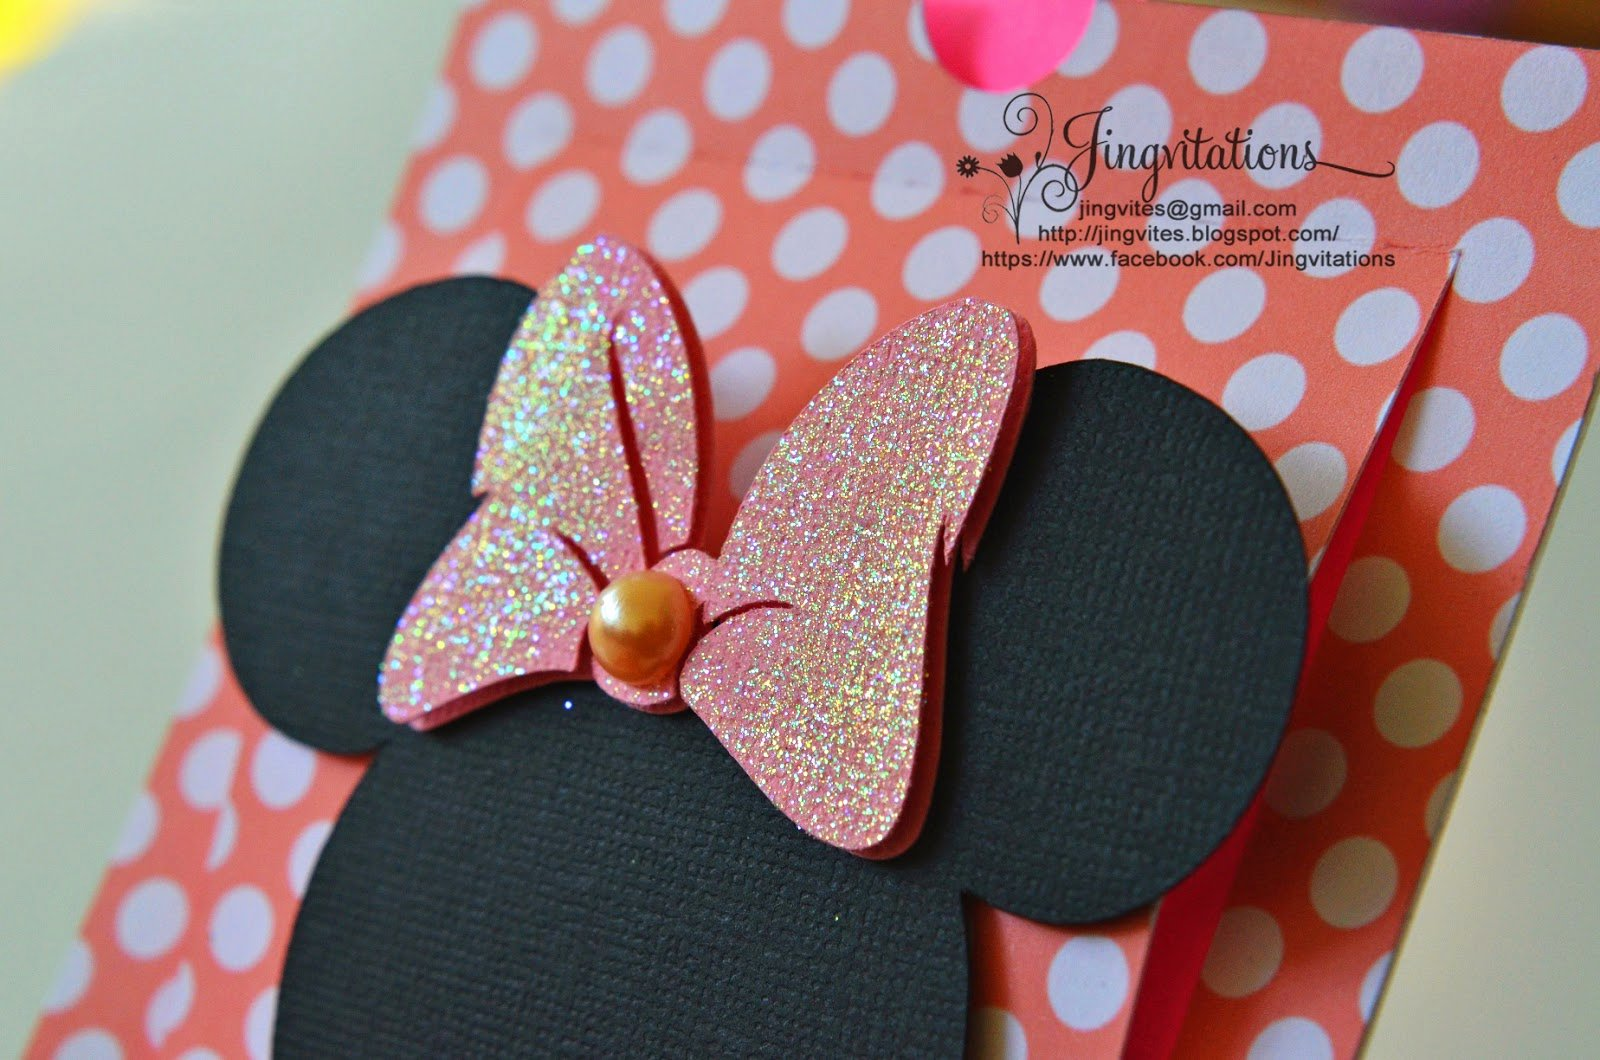 Homemade Minnie Mouse Invitations Beautiful Jingvitations Cricut Handmade Minnie Mouse Pop Up Invitations